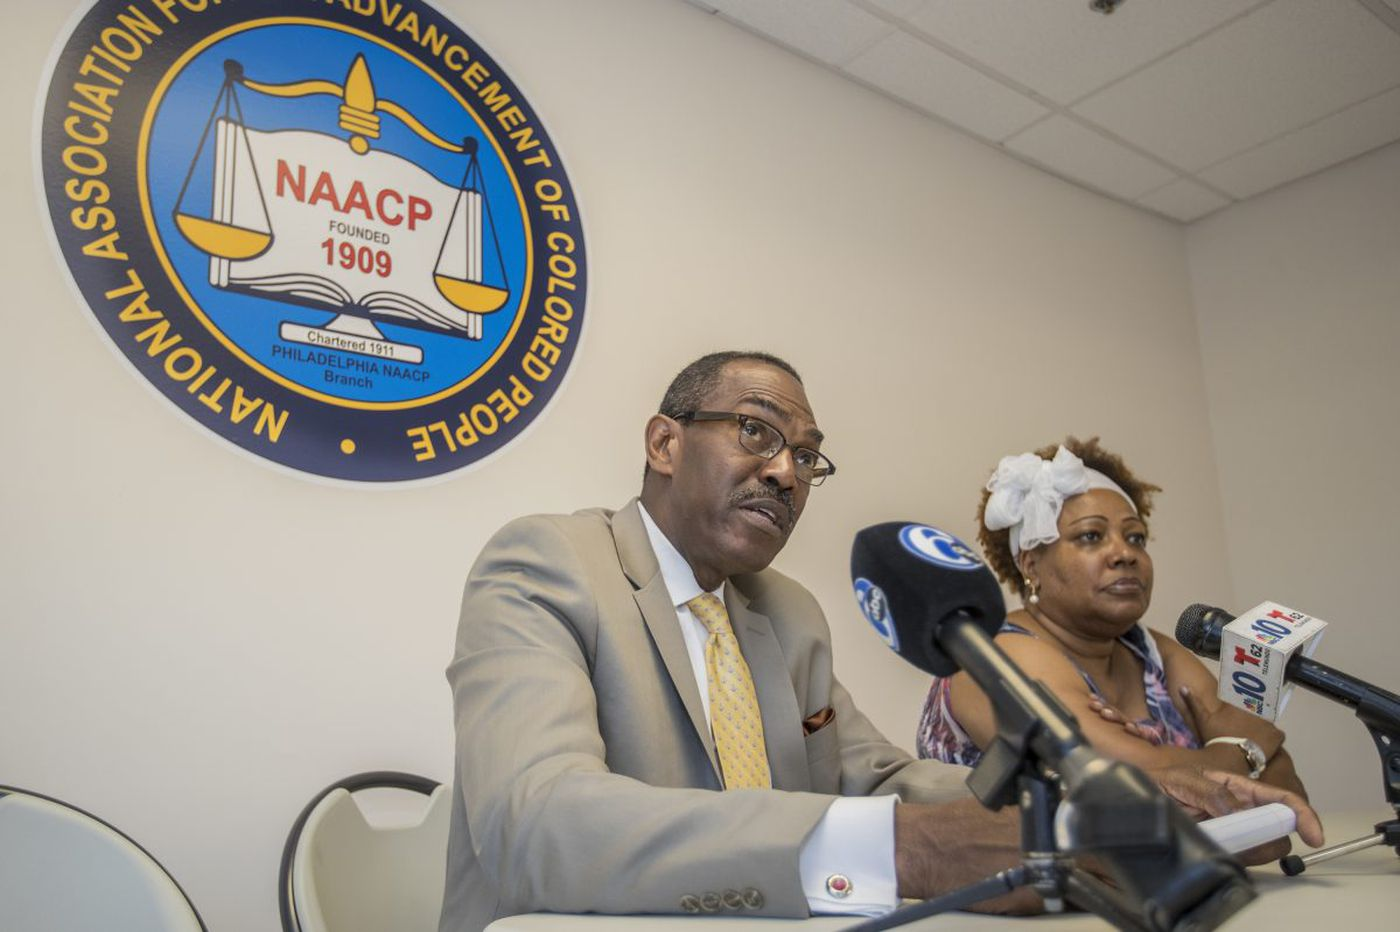 NAACP: Former DA Abraham unfit 'menace' for post